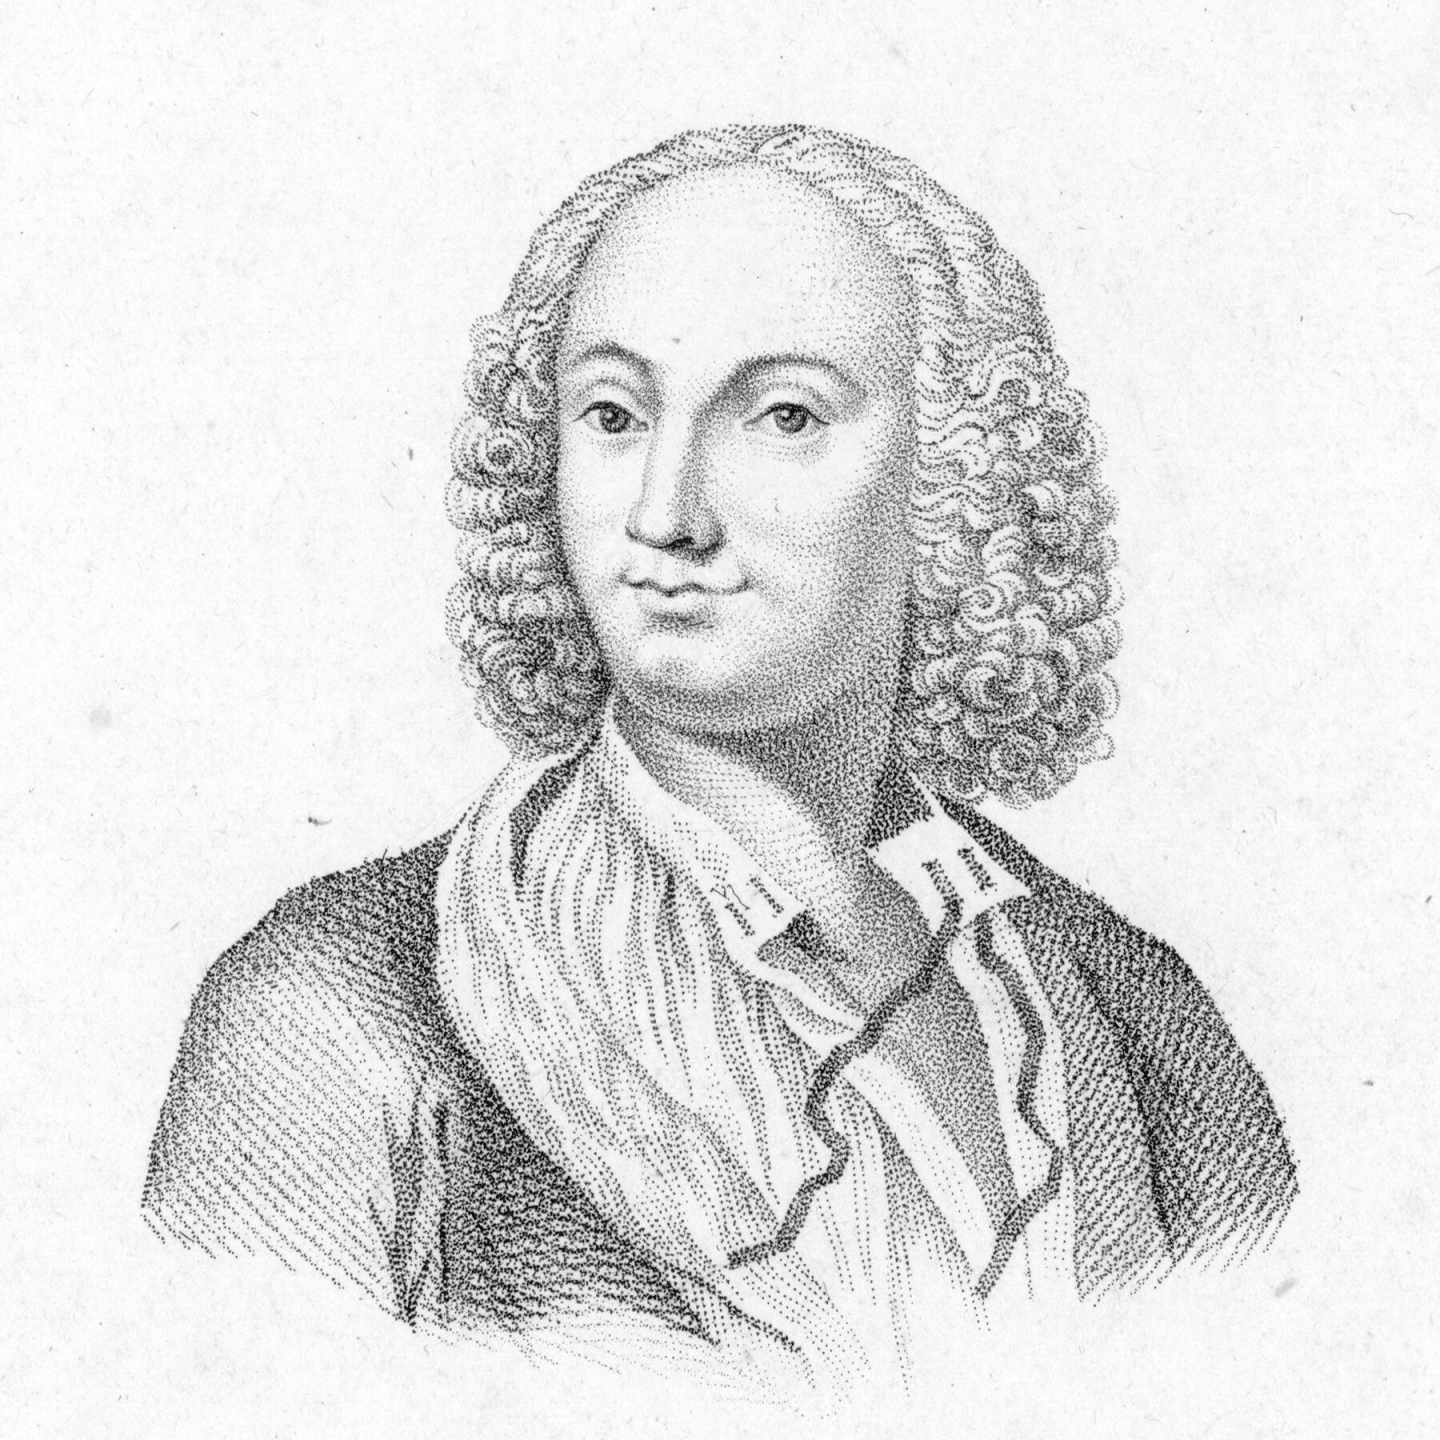 Retrato del compositor Antonio Vivaldi.